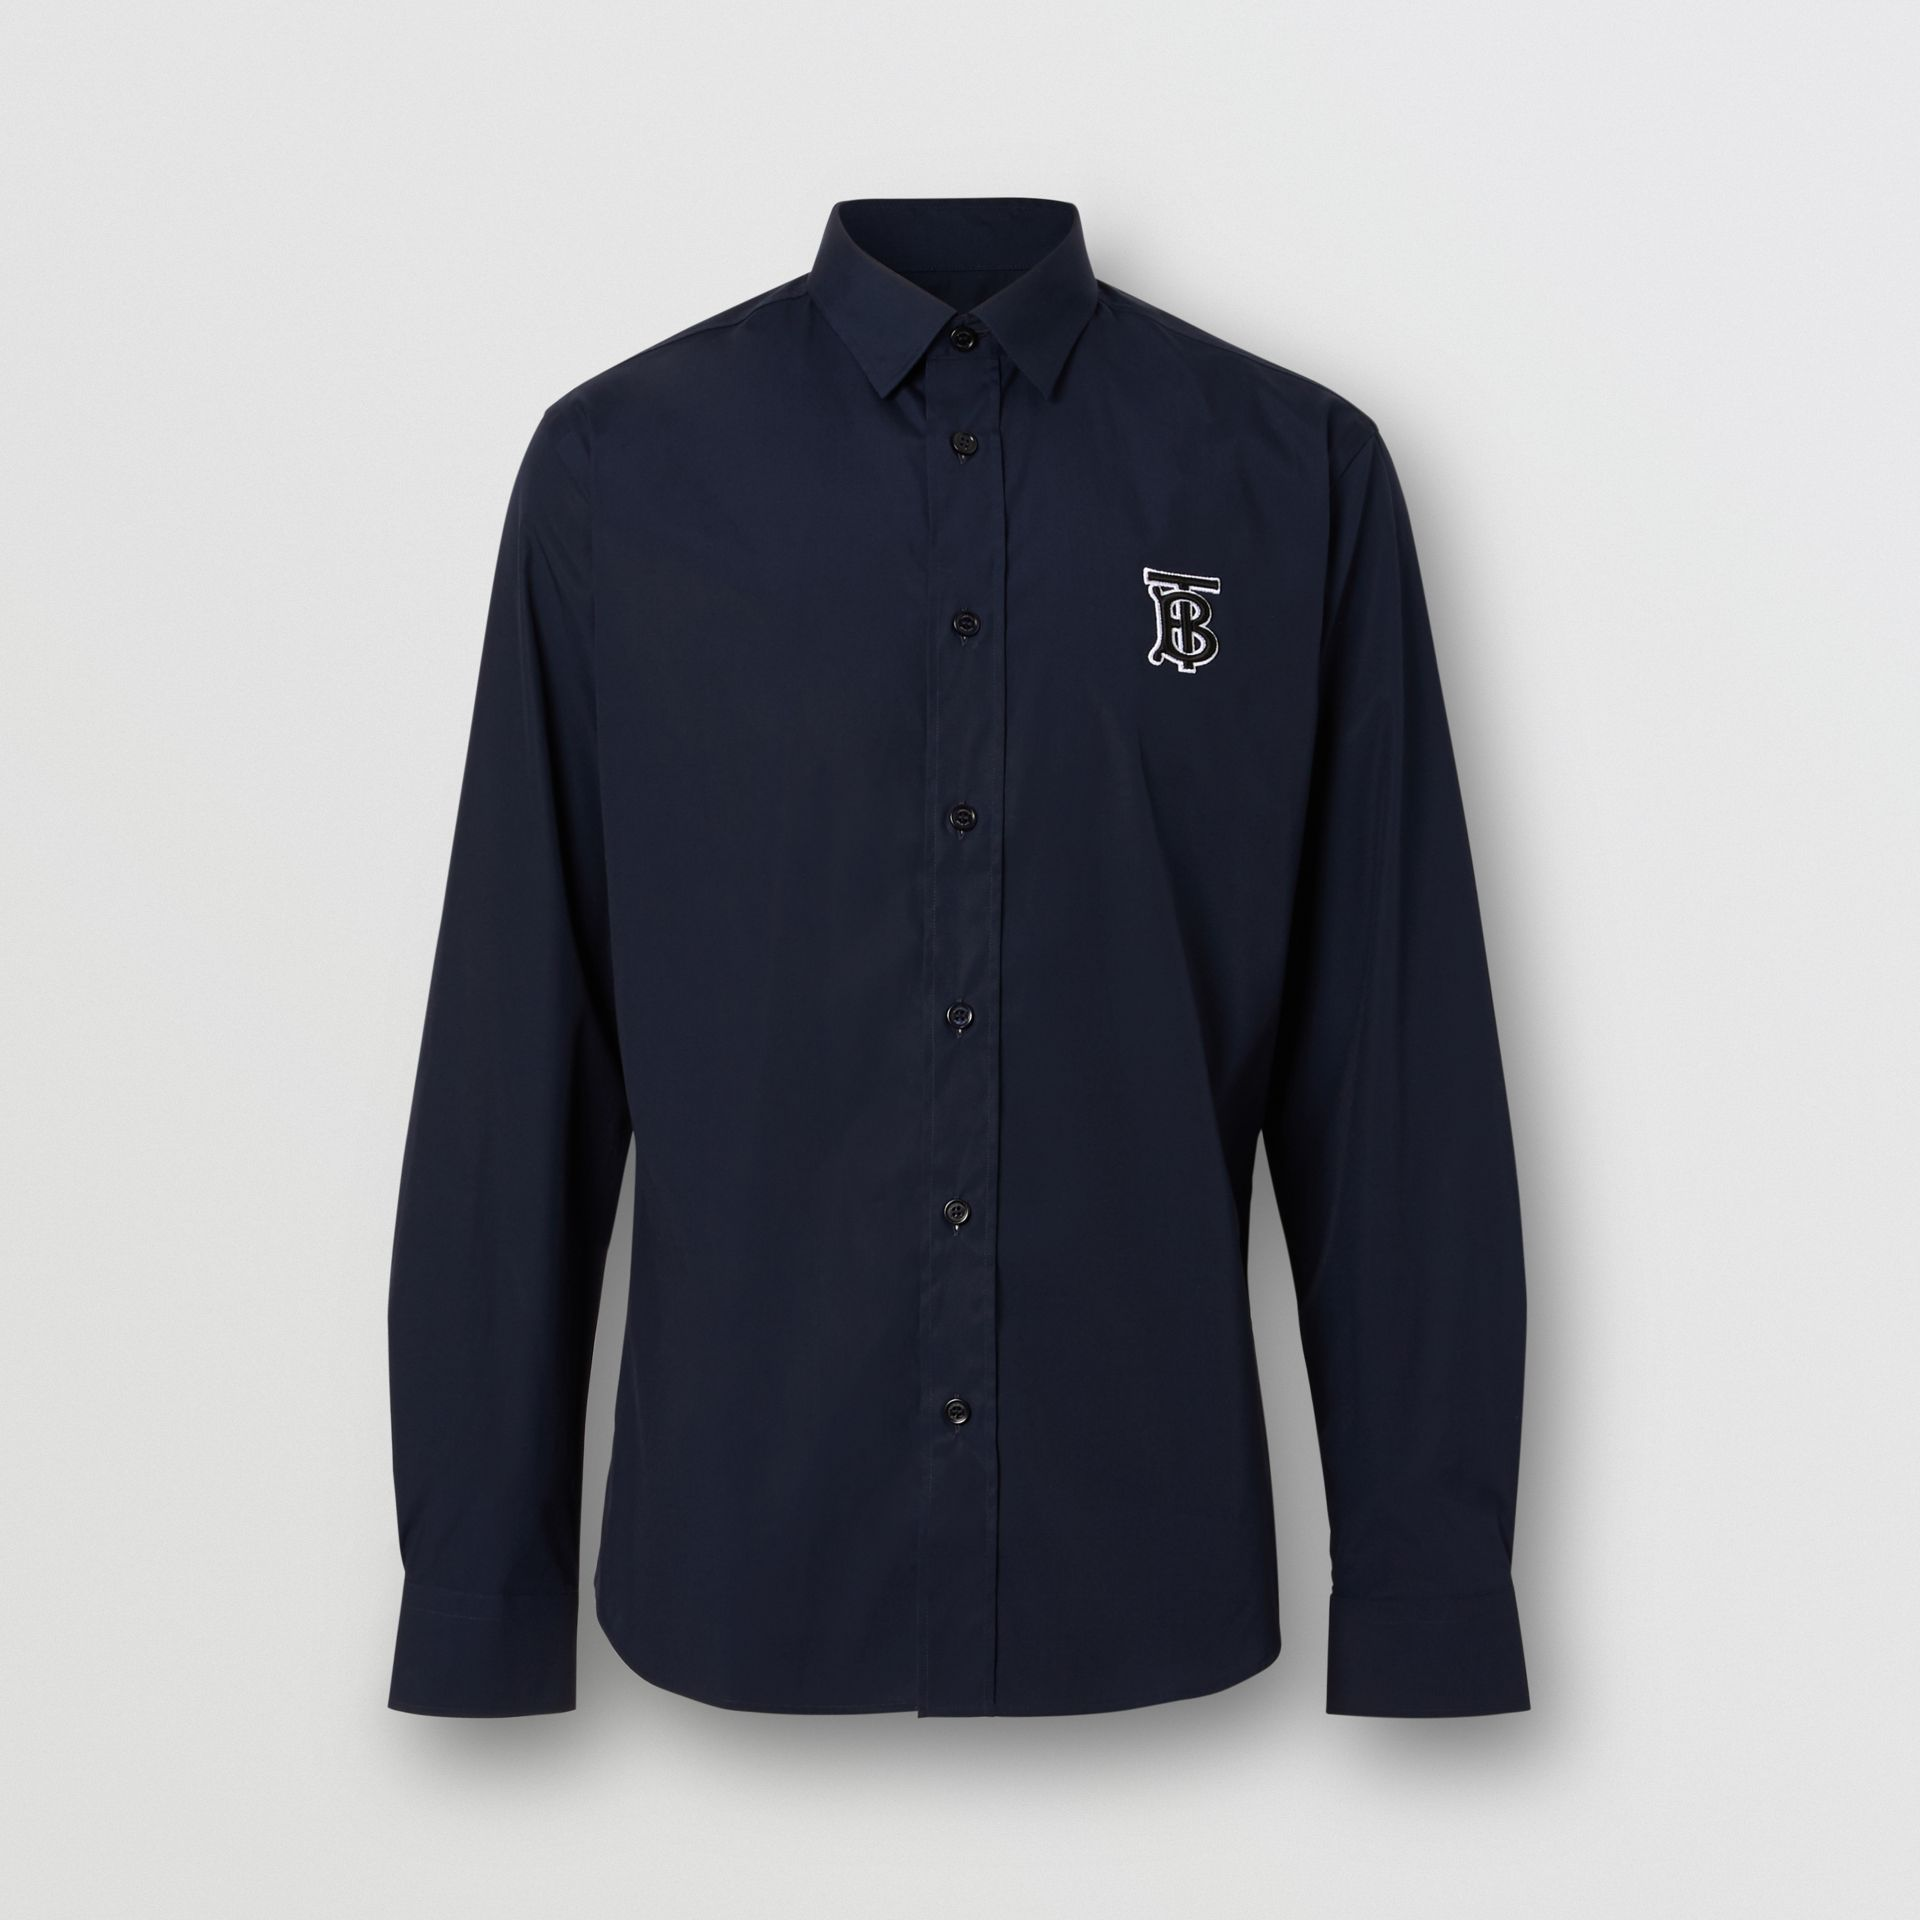 Monogram Motif Stretch Cotton Poplin Shirt in Navy - Men | Burberry United Kingdom - gallery image 3